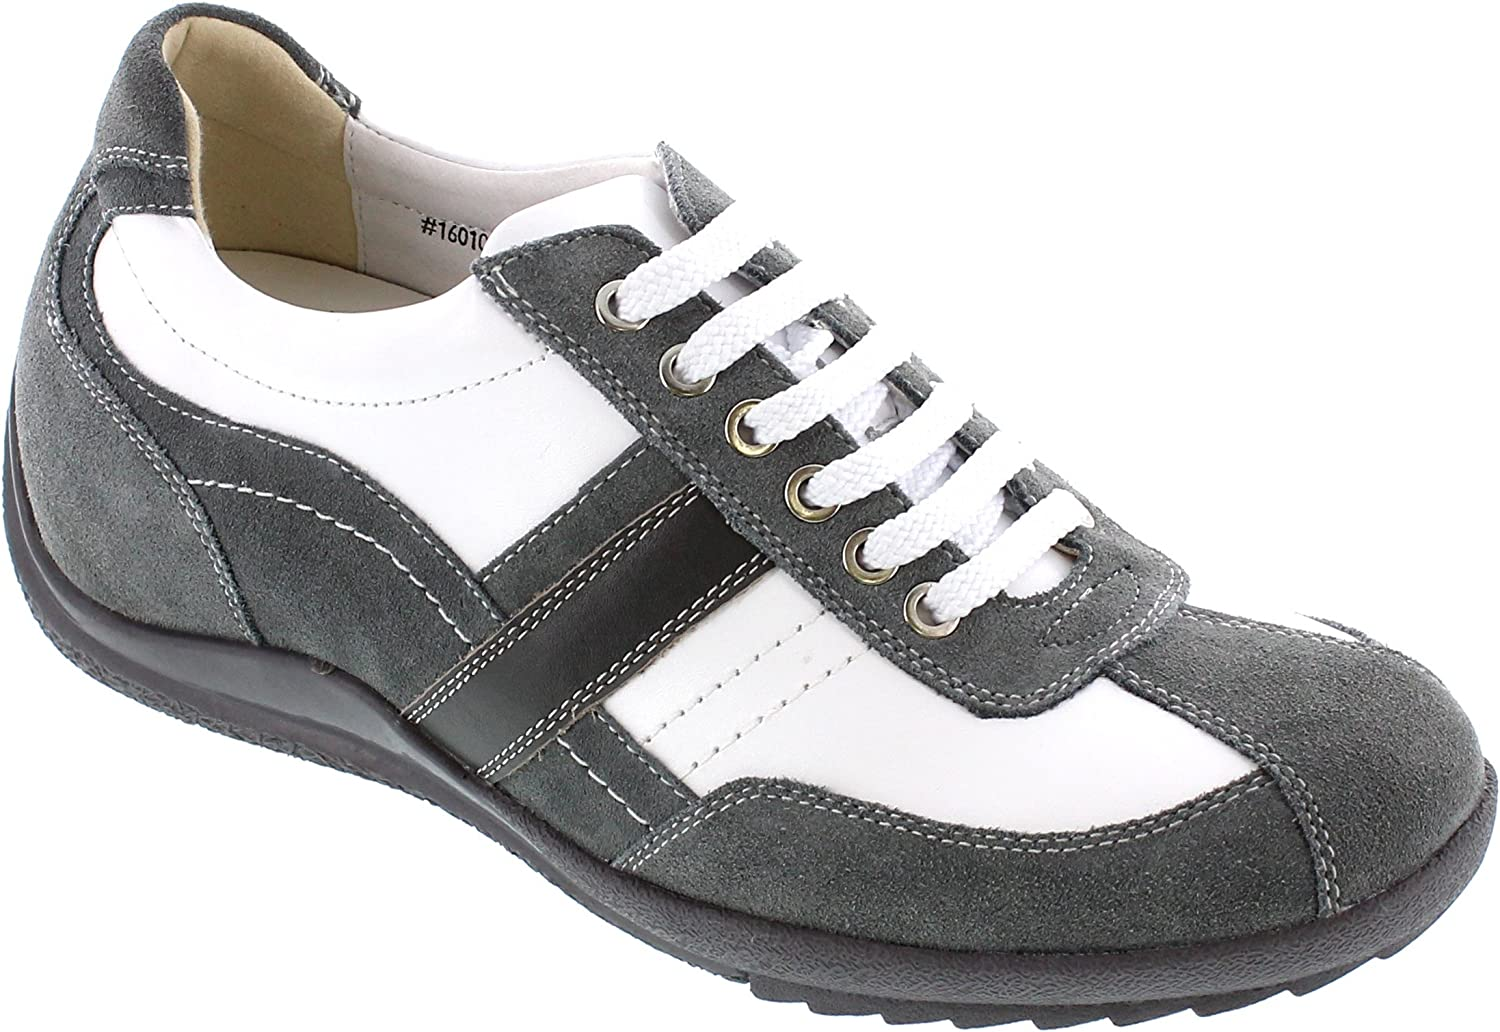 Toto Men's Invisible Height Increasing Elevator shoes - White Grey Leather Lace-up Casual Trainer Sneakers - 2.8 Inches Taller - A6635